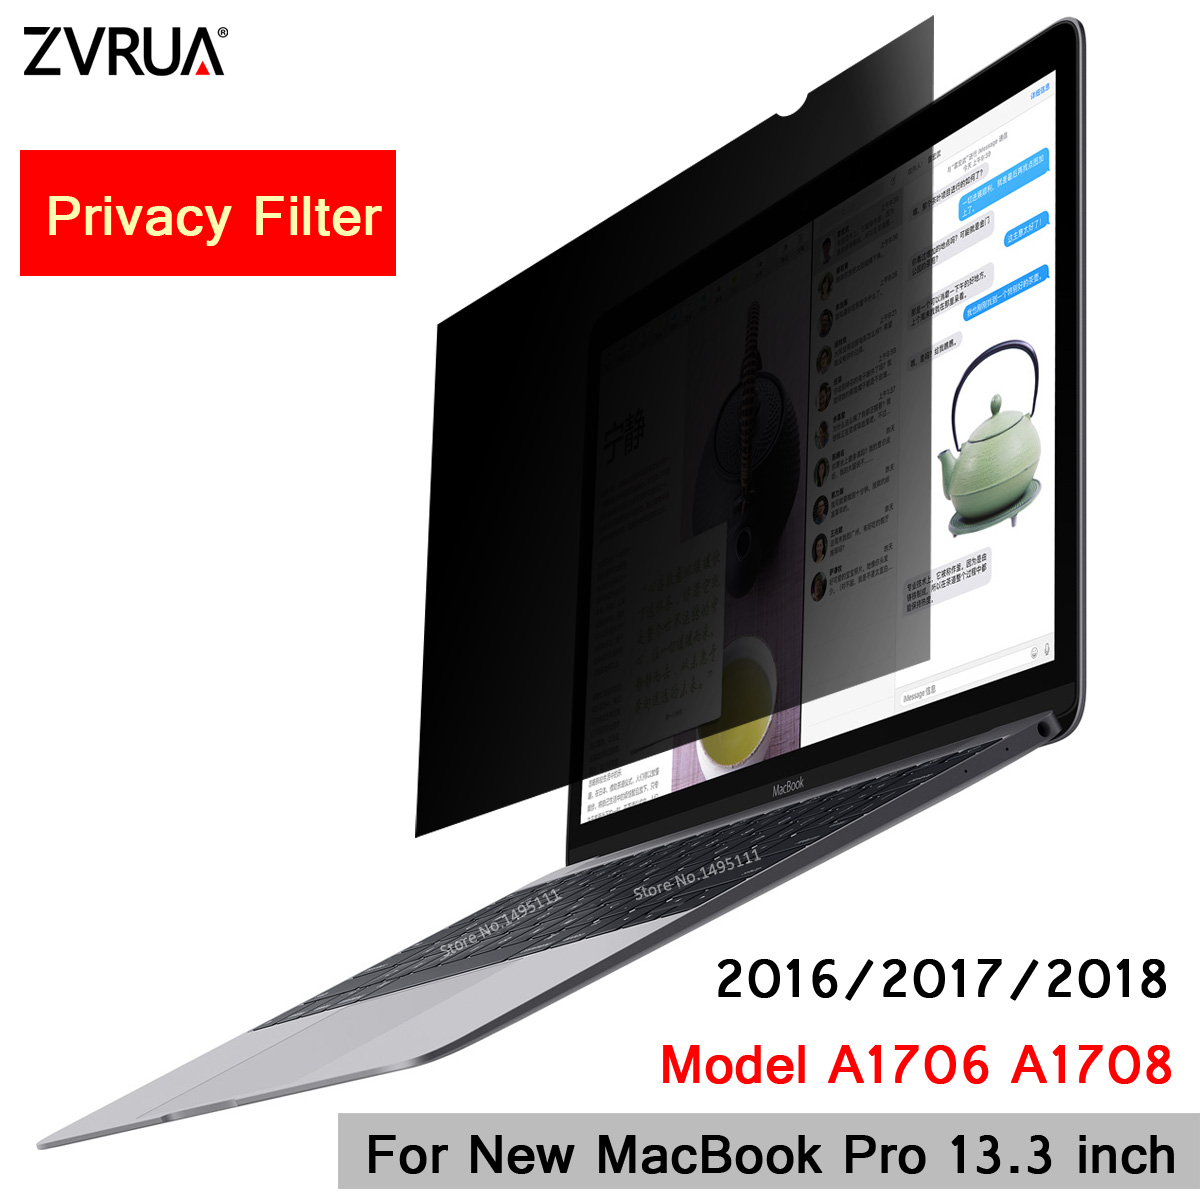 For 2016/2017/2018 New MacBook Pro 13.3 inch Touch Bar Model A1706 A1708, Privacy Filter Screens Protective film (299mm*195mm)